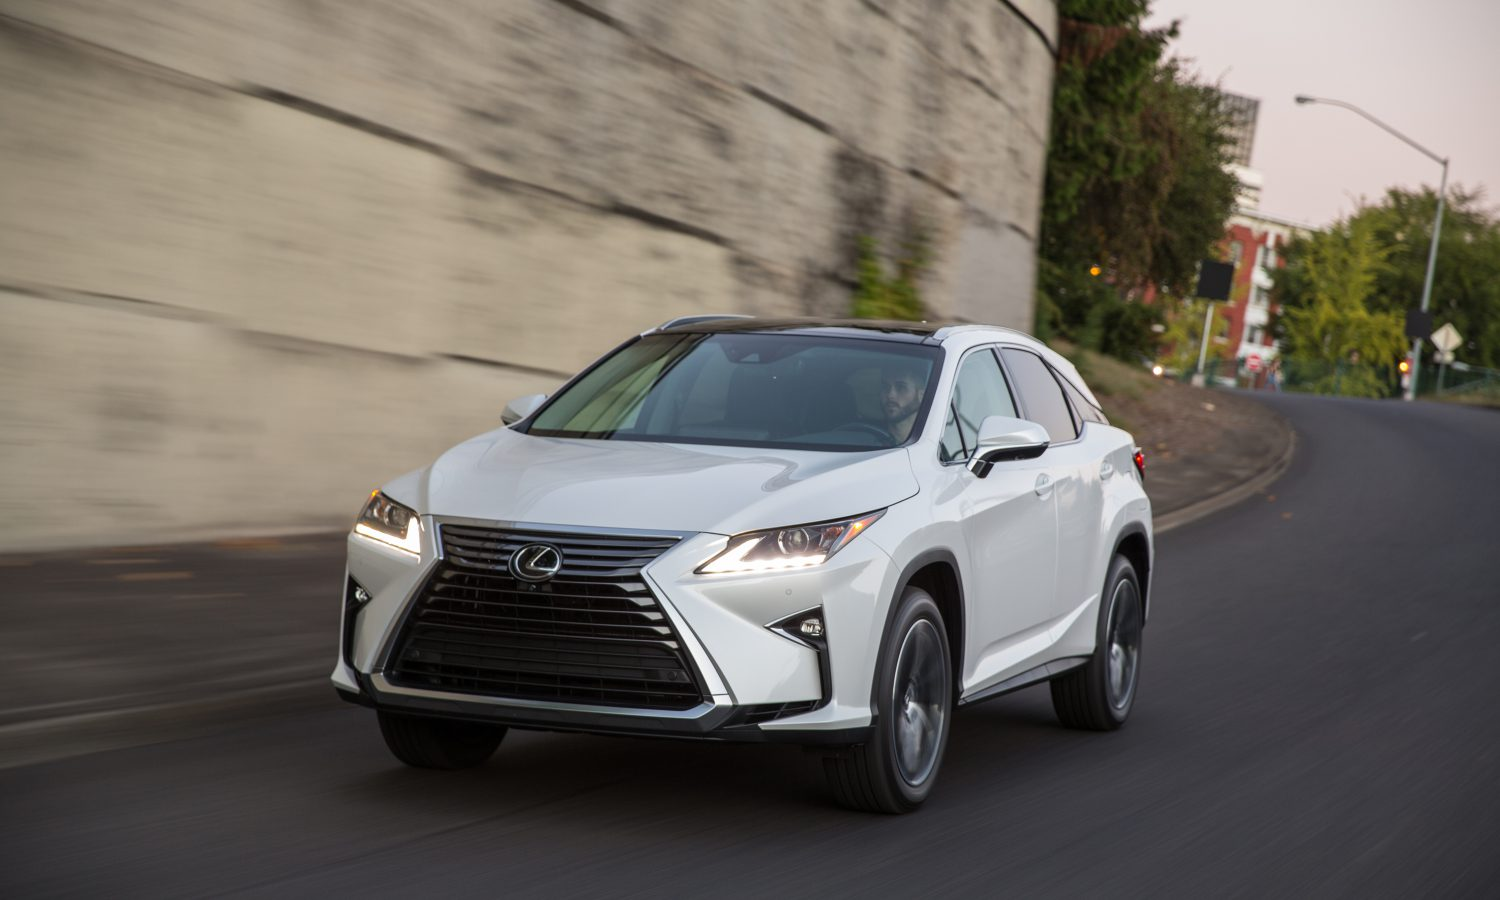 2017 Lexus RX Bolsters Market Leadership with New Standard